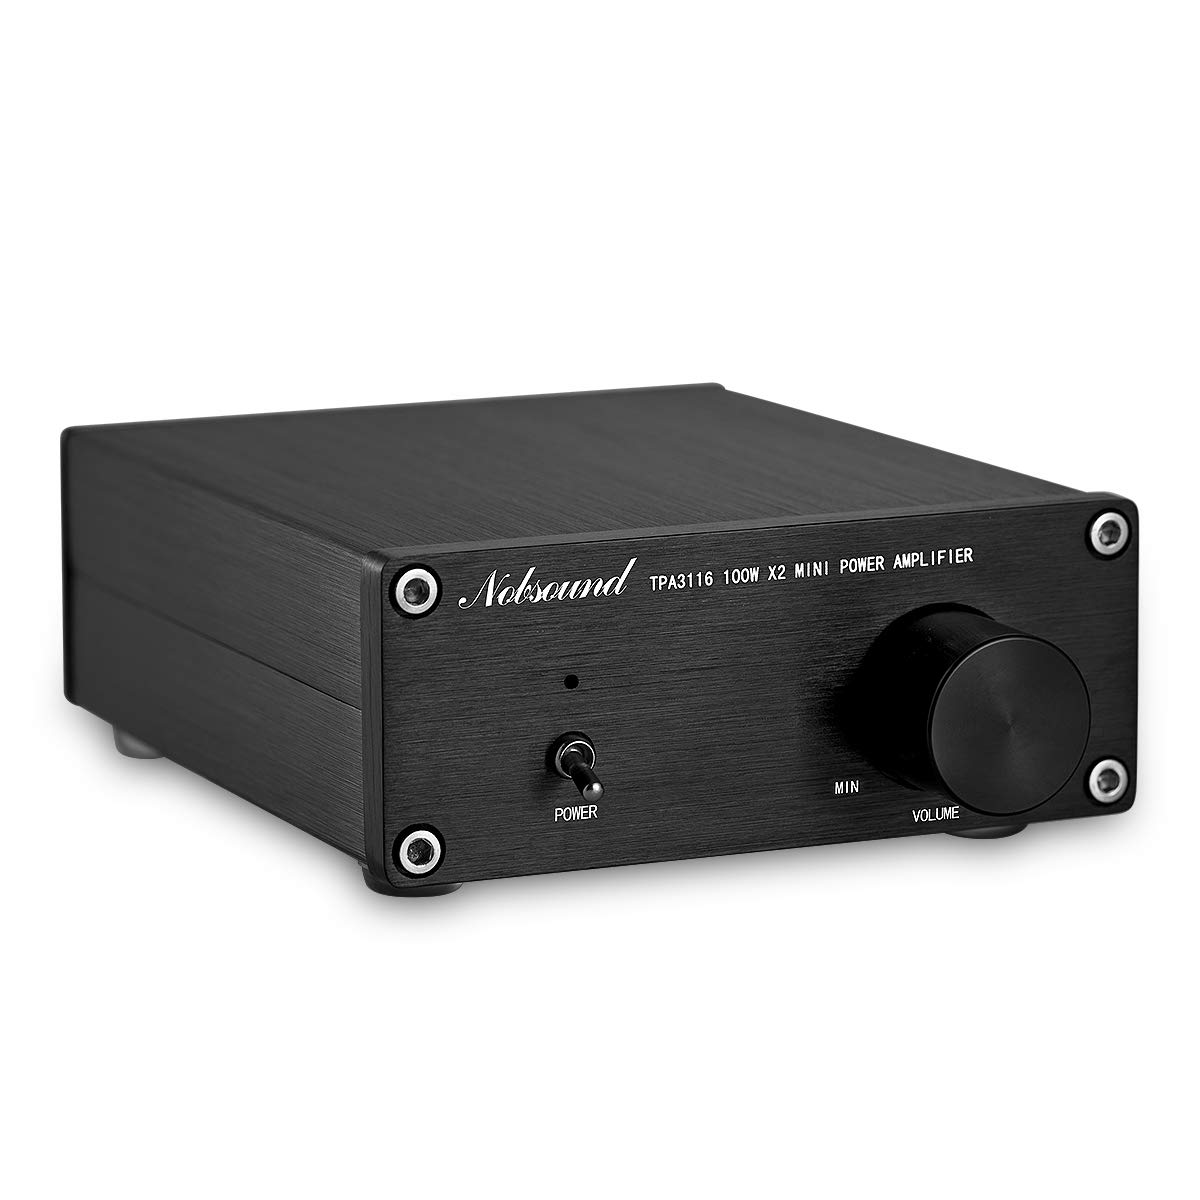 Nobsound Mini Dual TPA3116 Digital Power Amplifier HiFi Stereo Amp Audiophile-Grade 2.0 Channel 100W×2 NE5532P Pre-Amp (Black)